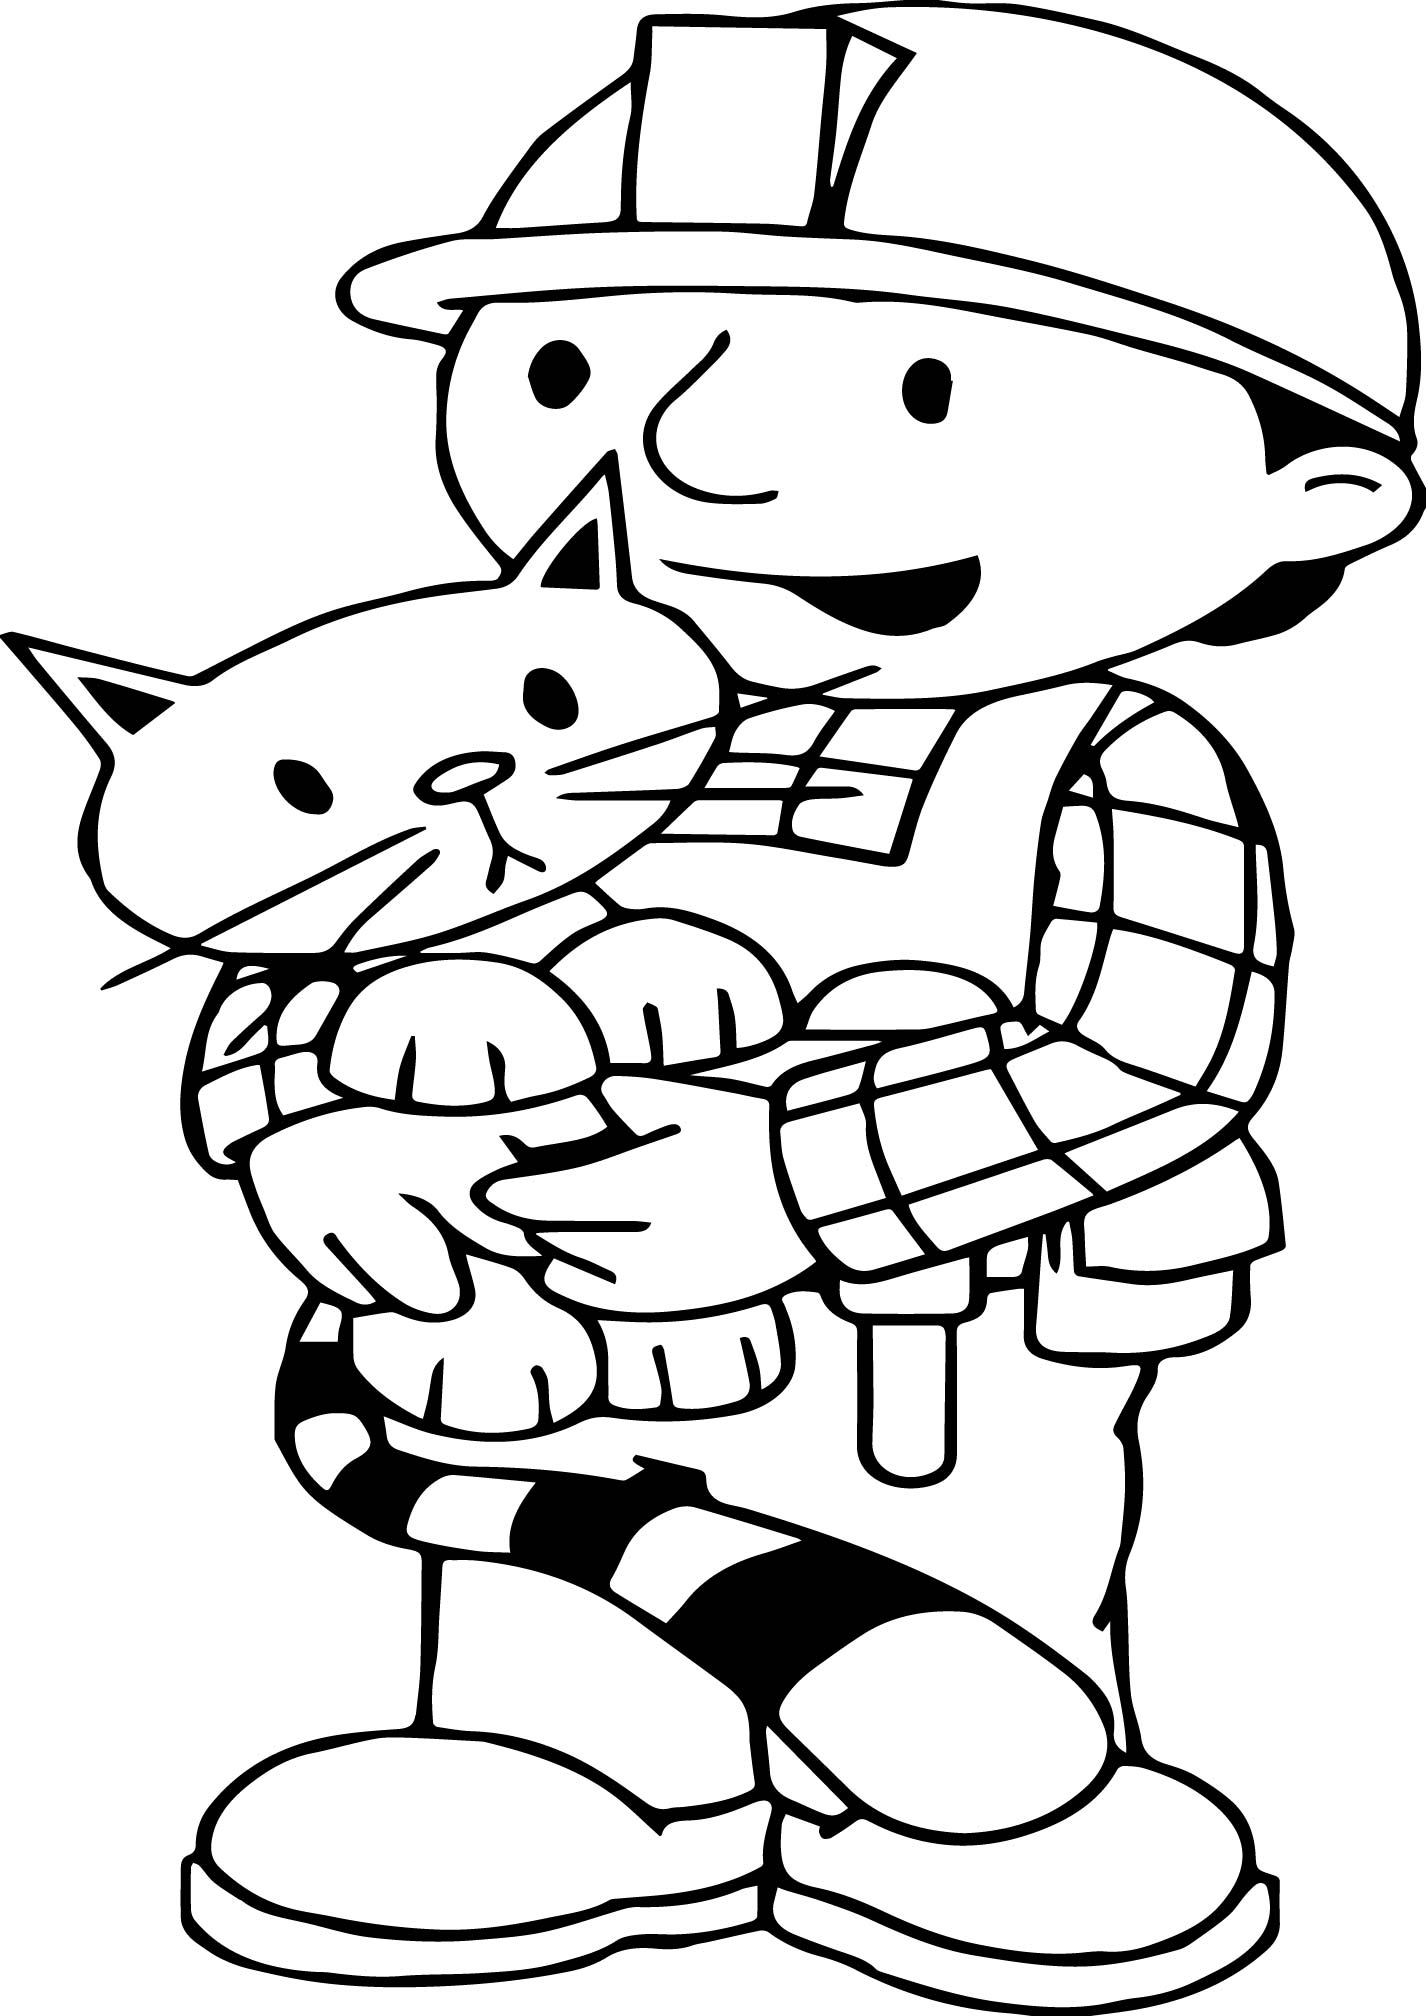 Bob The Builder Love Cat Coloring Page Wecoloringpage